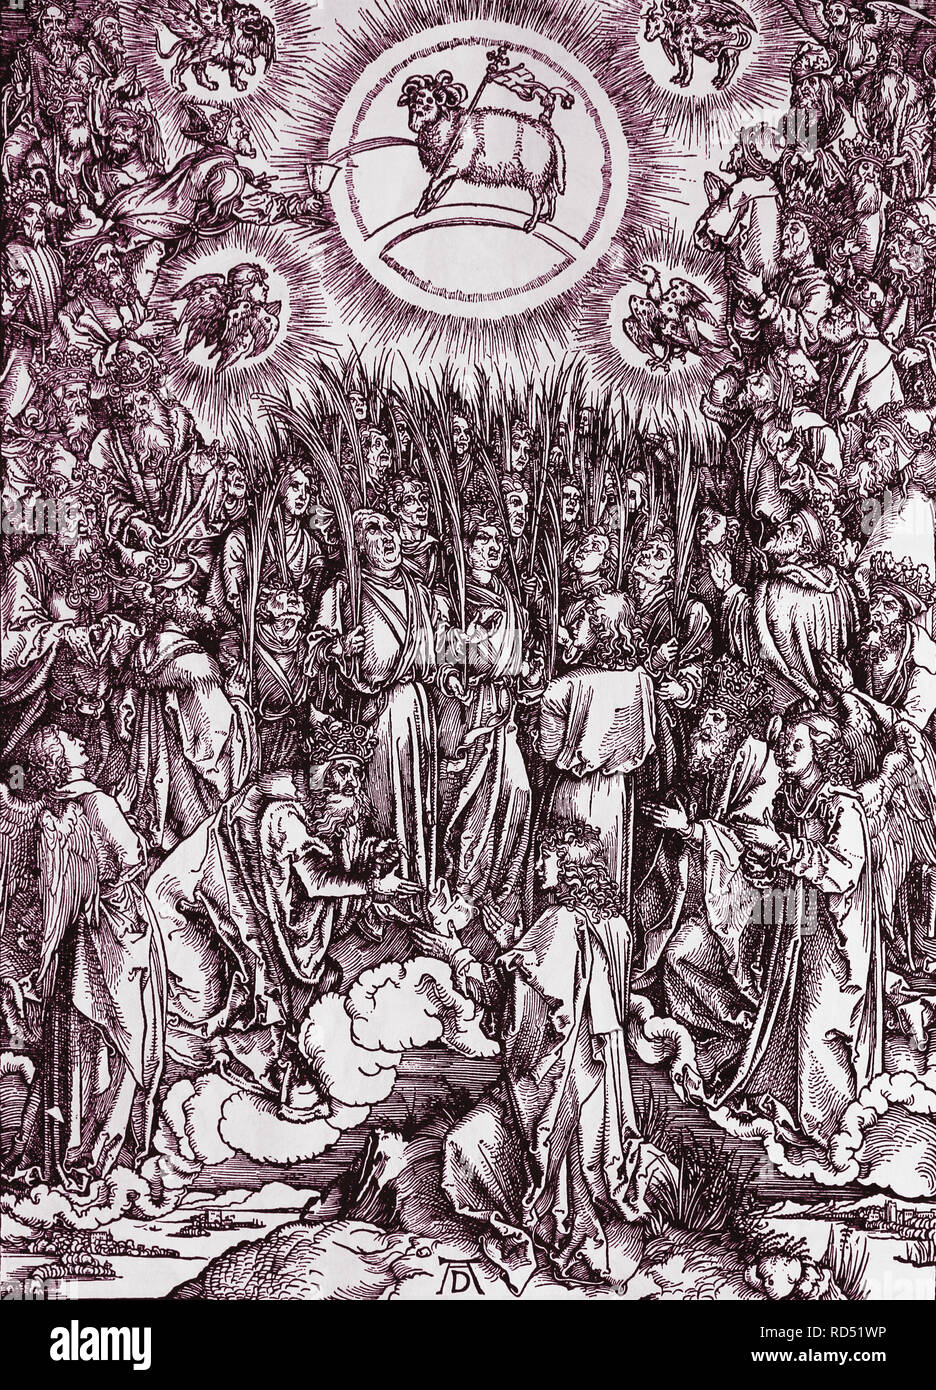 The hymn in adoration of the lamb. Apocalypse. Woodcut by Albrecht Durer. 1498. - Stock Image